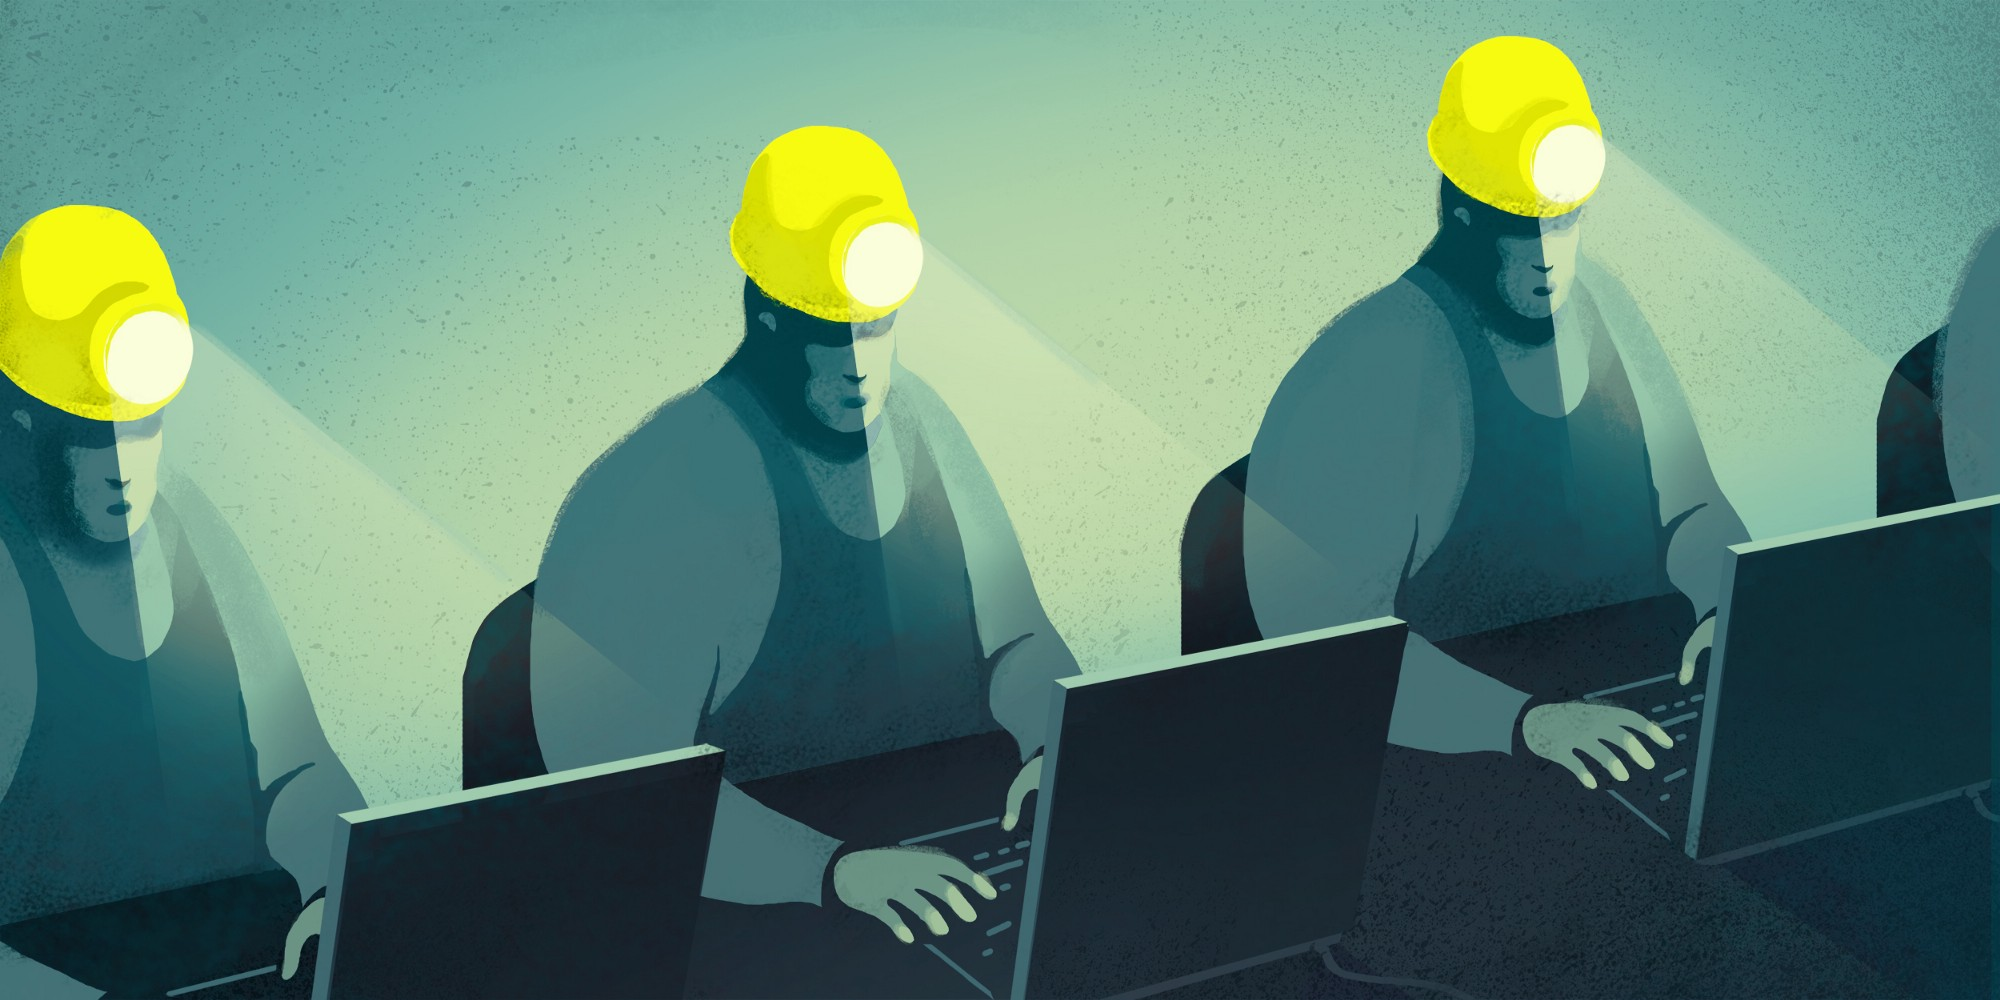 Christina Ung Illustration - Coal Miner's Code